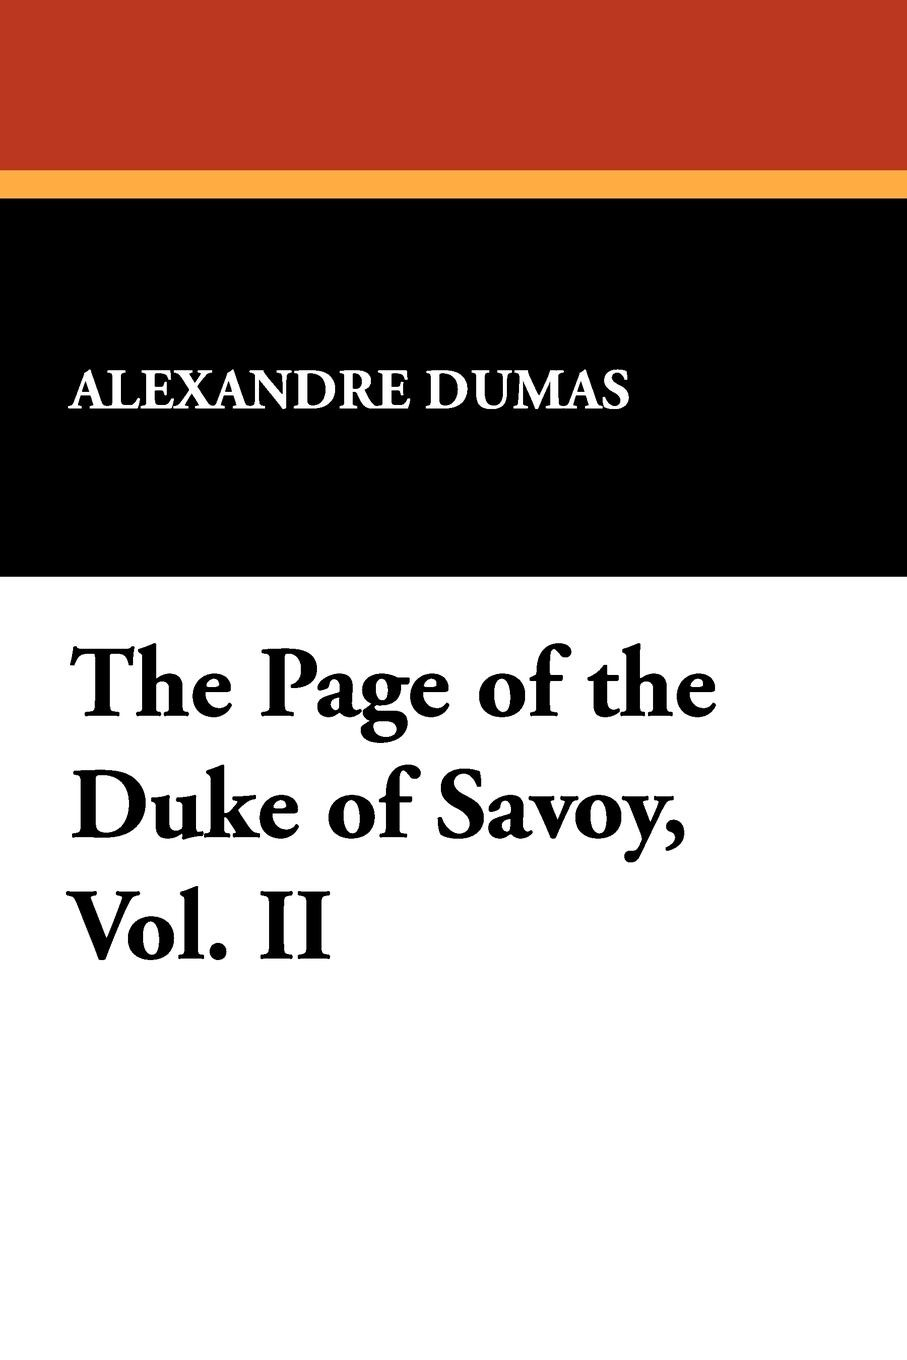 Alexandre Dumas The Page of the Duke of Savoy, Vol. II catherine zueva the poetry of spring page 7 page 7 page 9